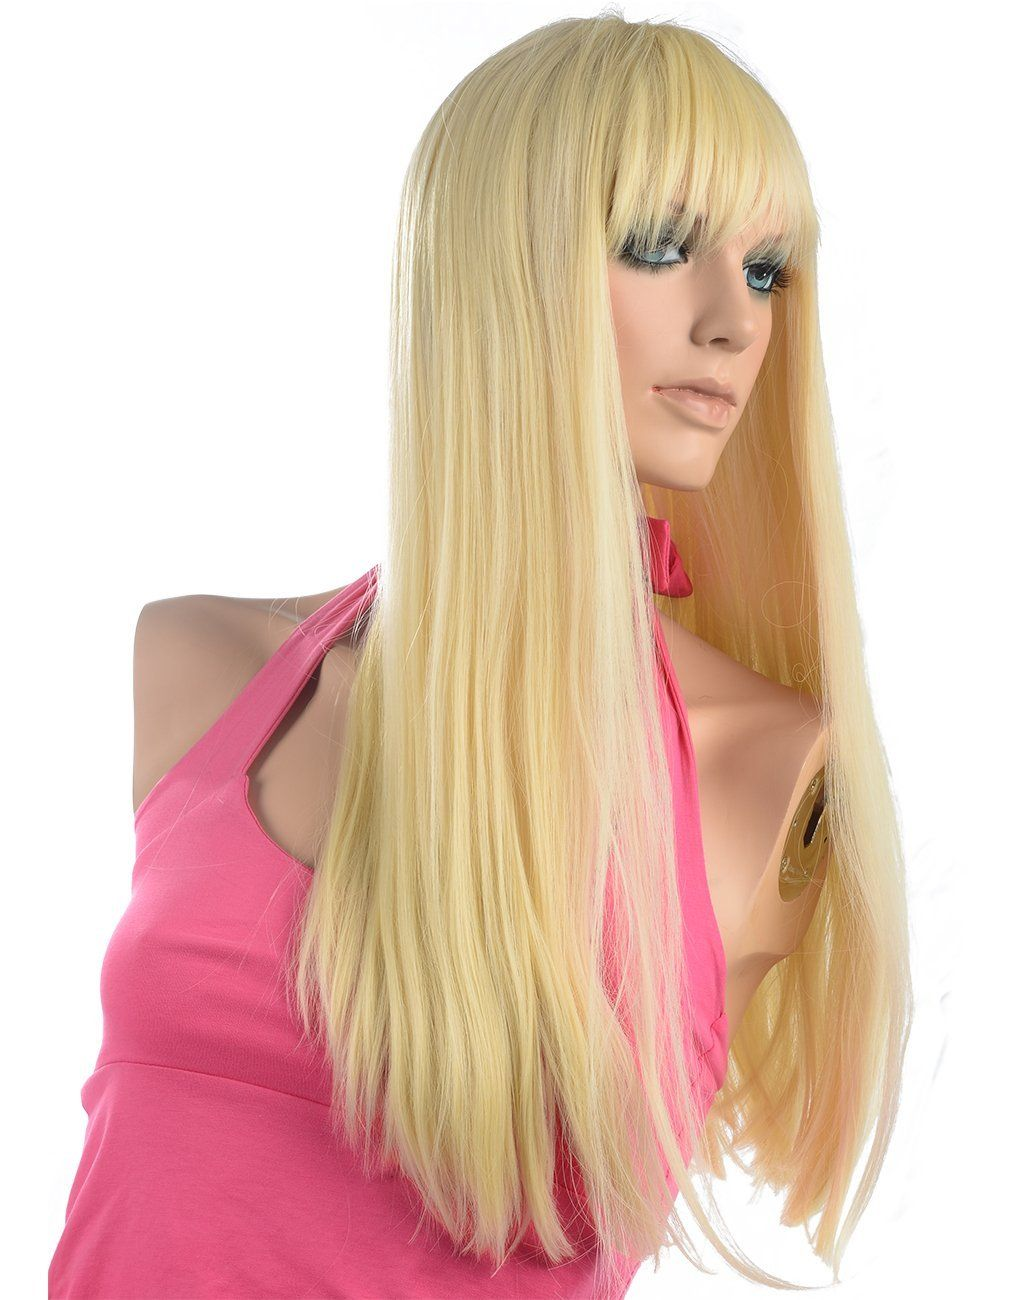 Namecute Bleach Blonde Wig Long Straight with Bangs Full Cap Synthetic Wigs  Natural Hair for Women 24 Inch    This is an Amazon Affiliate link. 0282261b8f